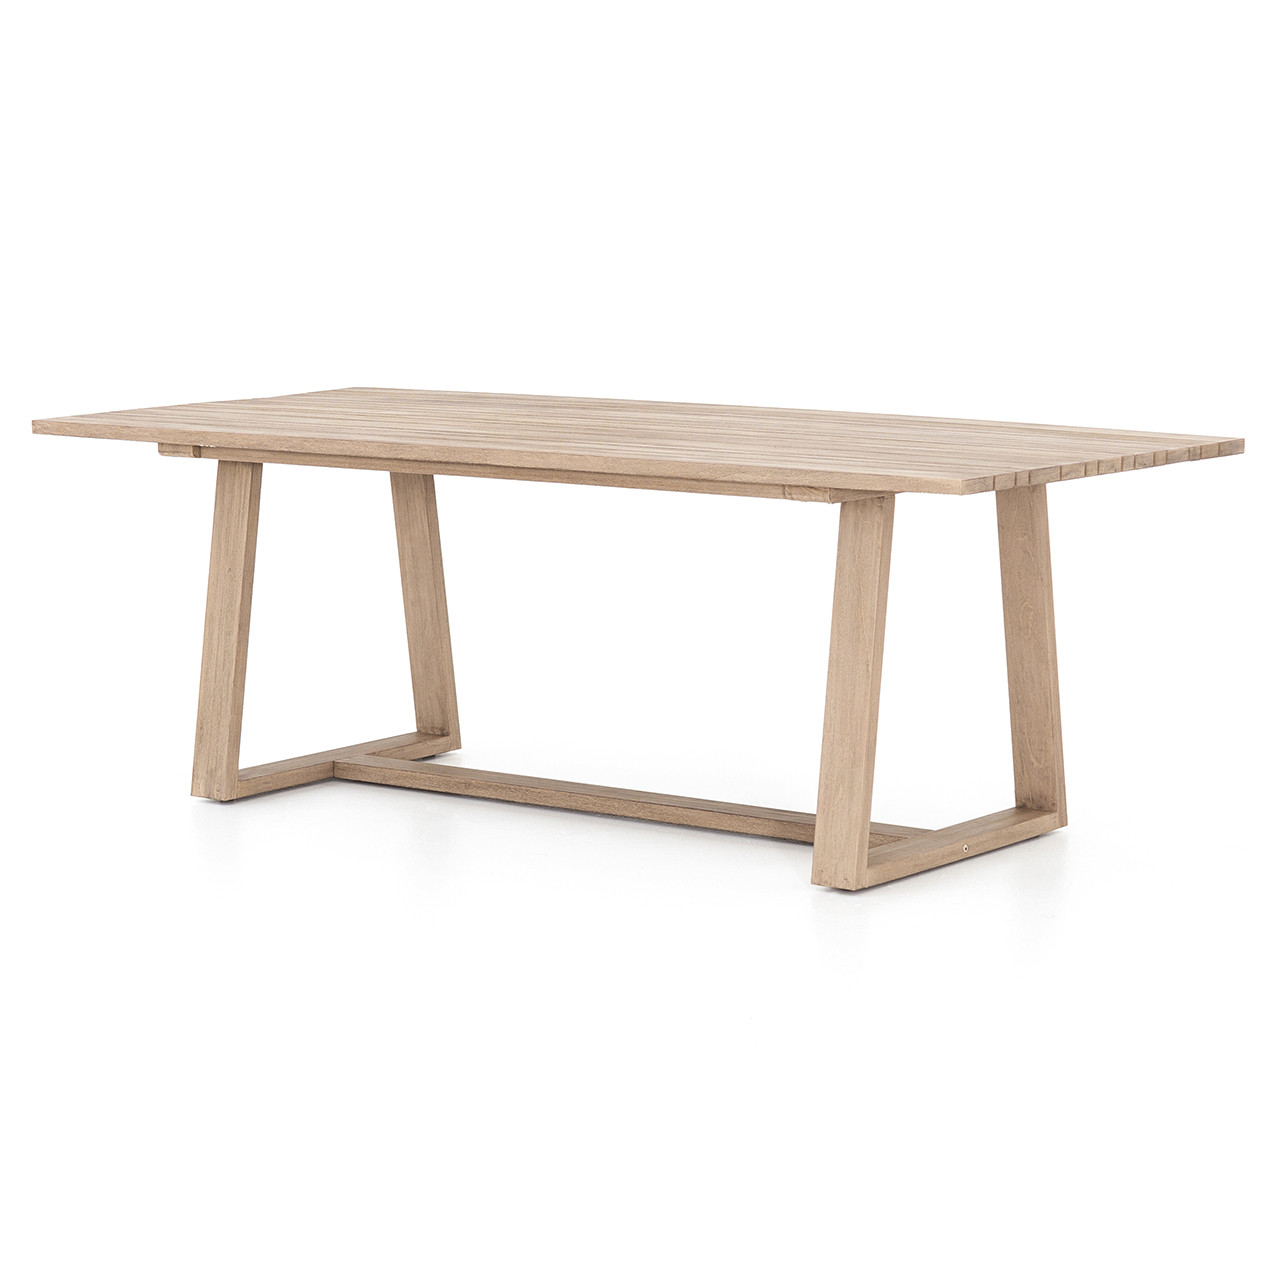 Solano Teak Outdoor Dining Table